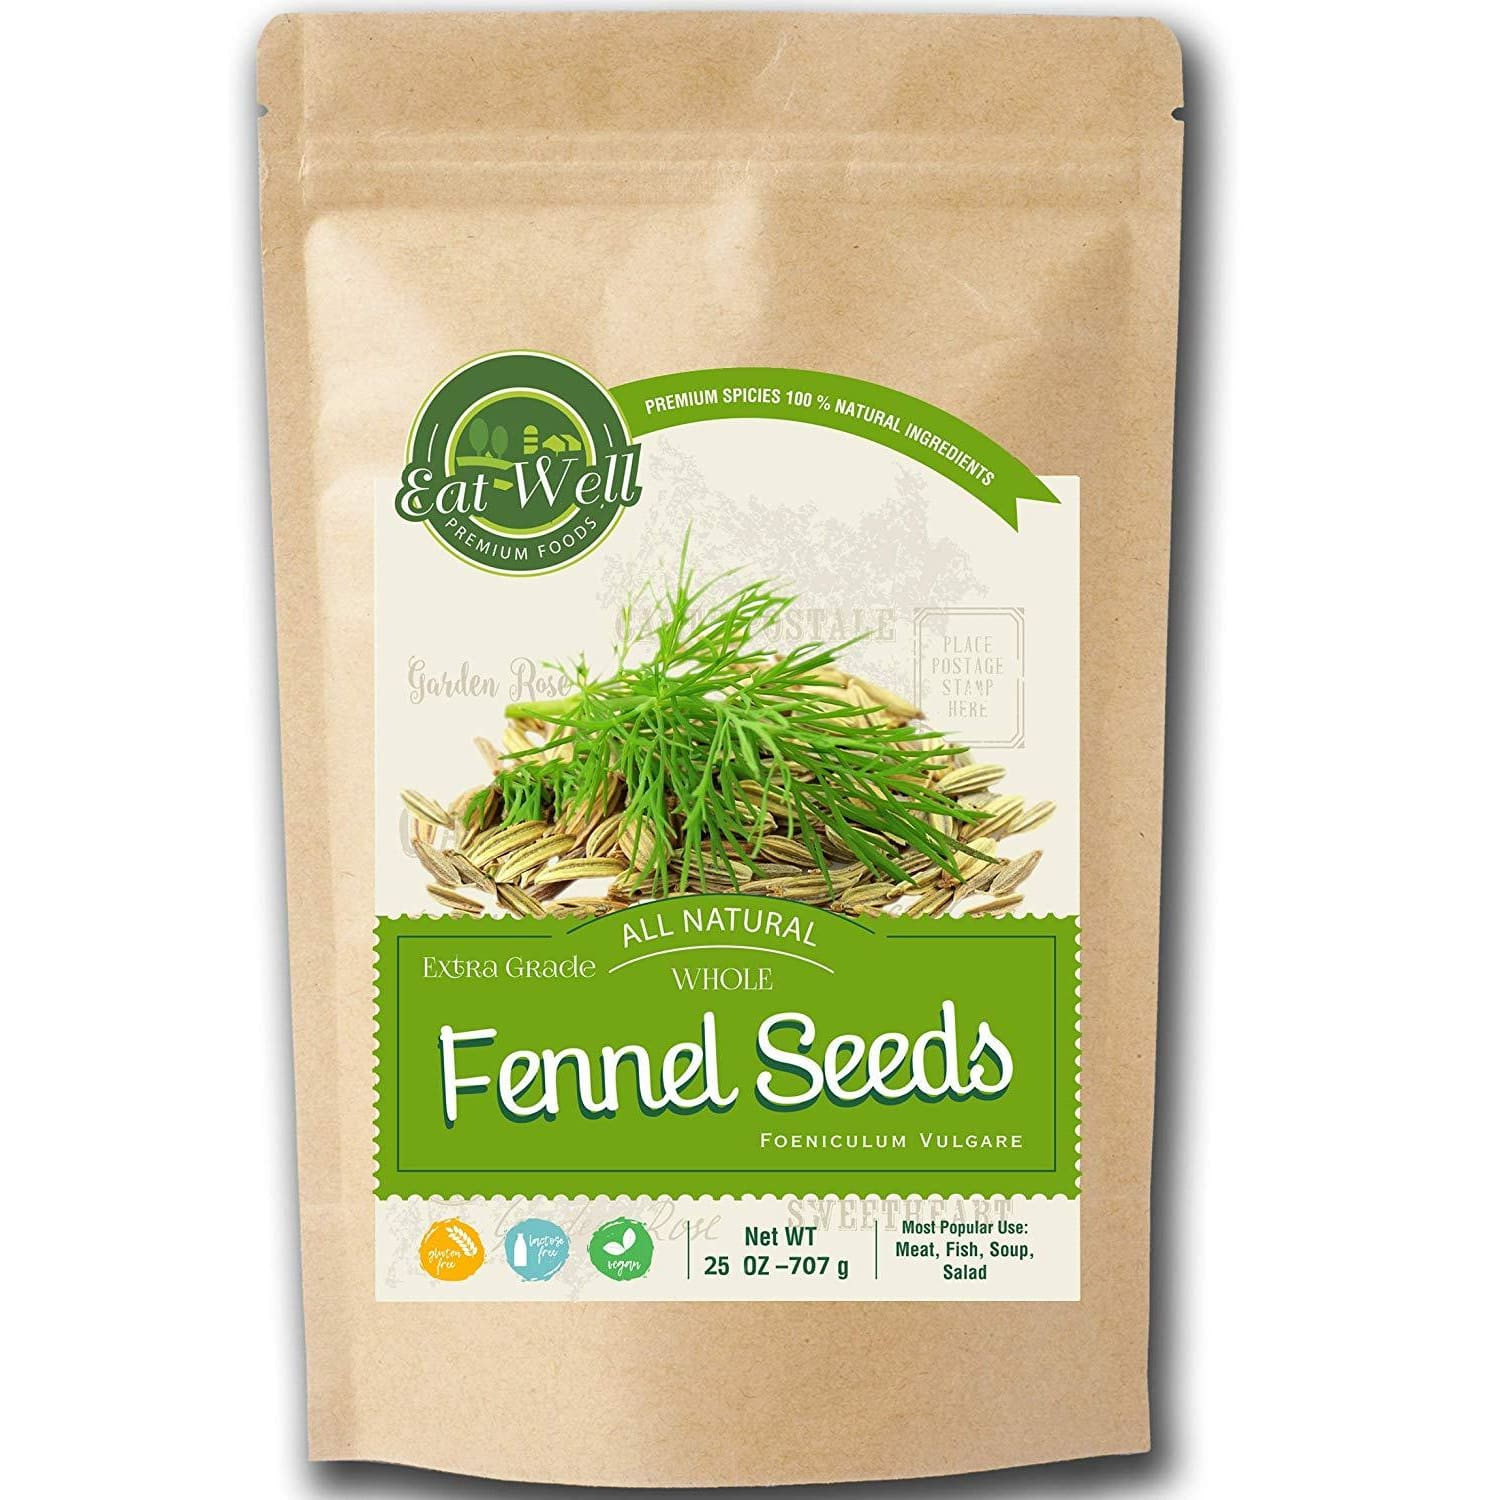 Fennel Seeds | 25oz - Reseable Bag